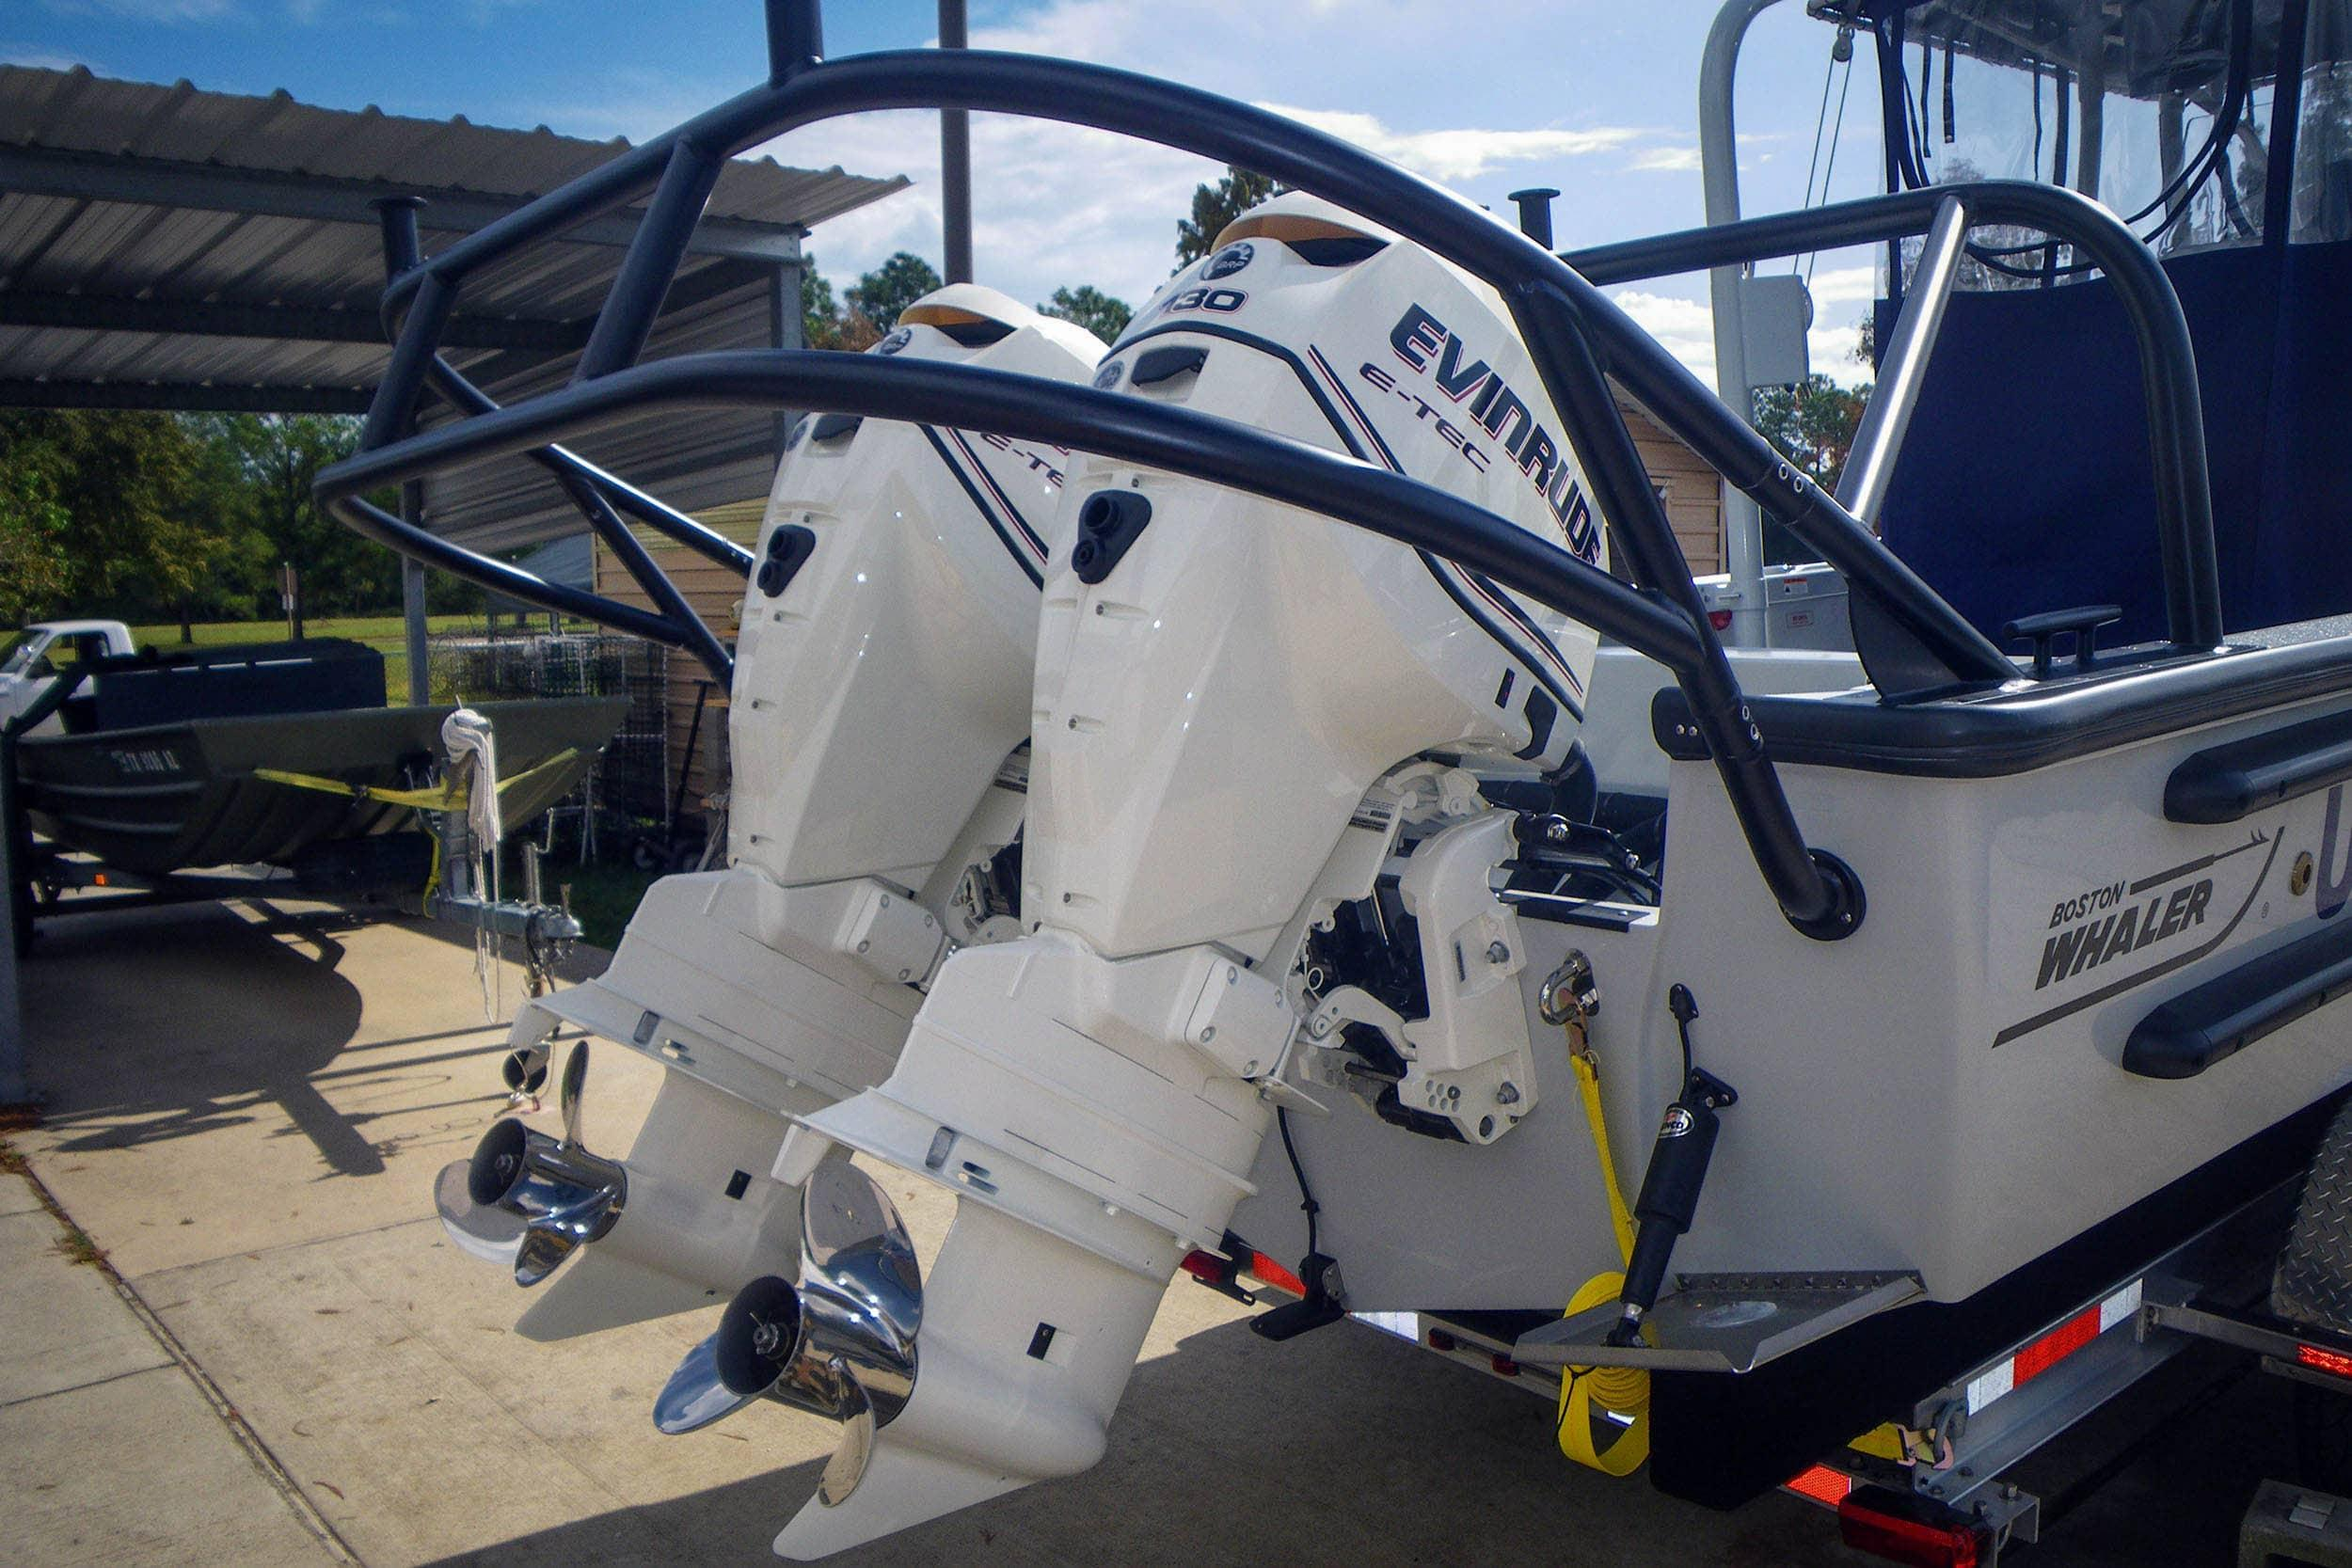 The Whaler is Equiped with Twin 130hp Evinrude Outboard Motors